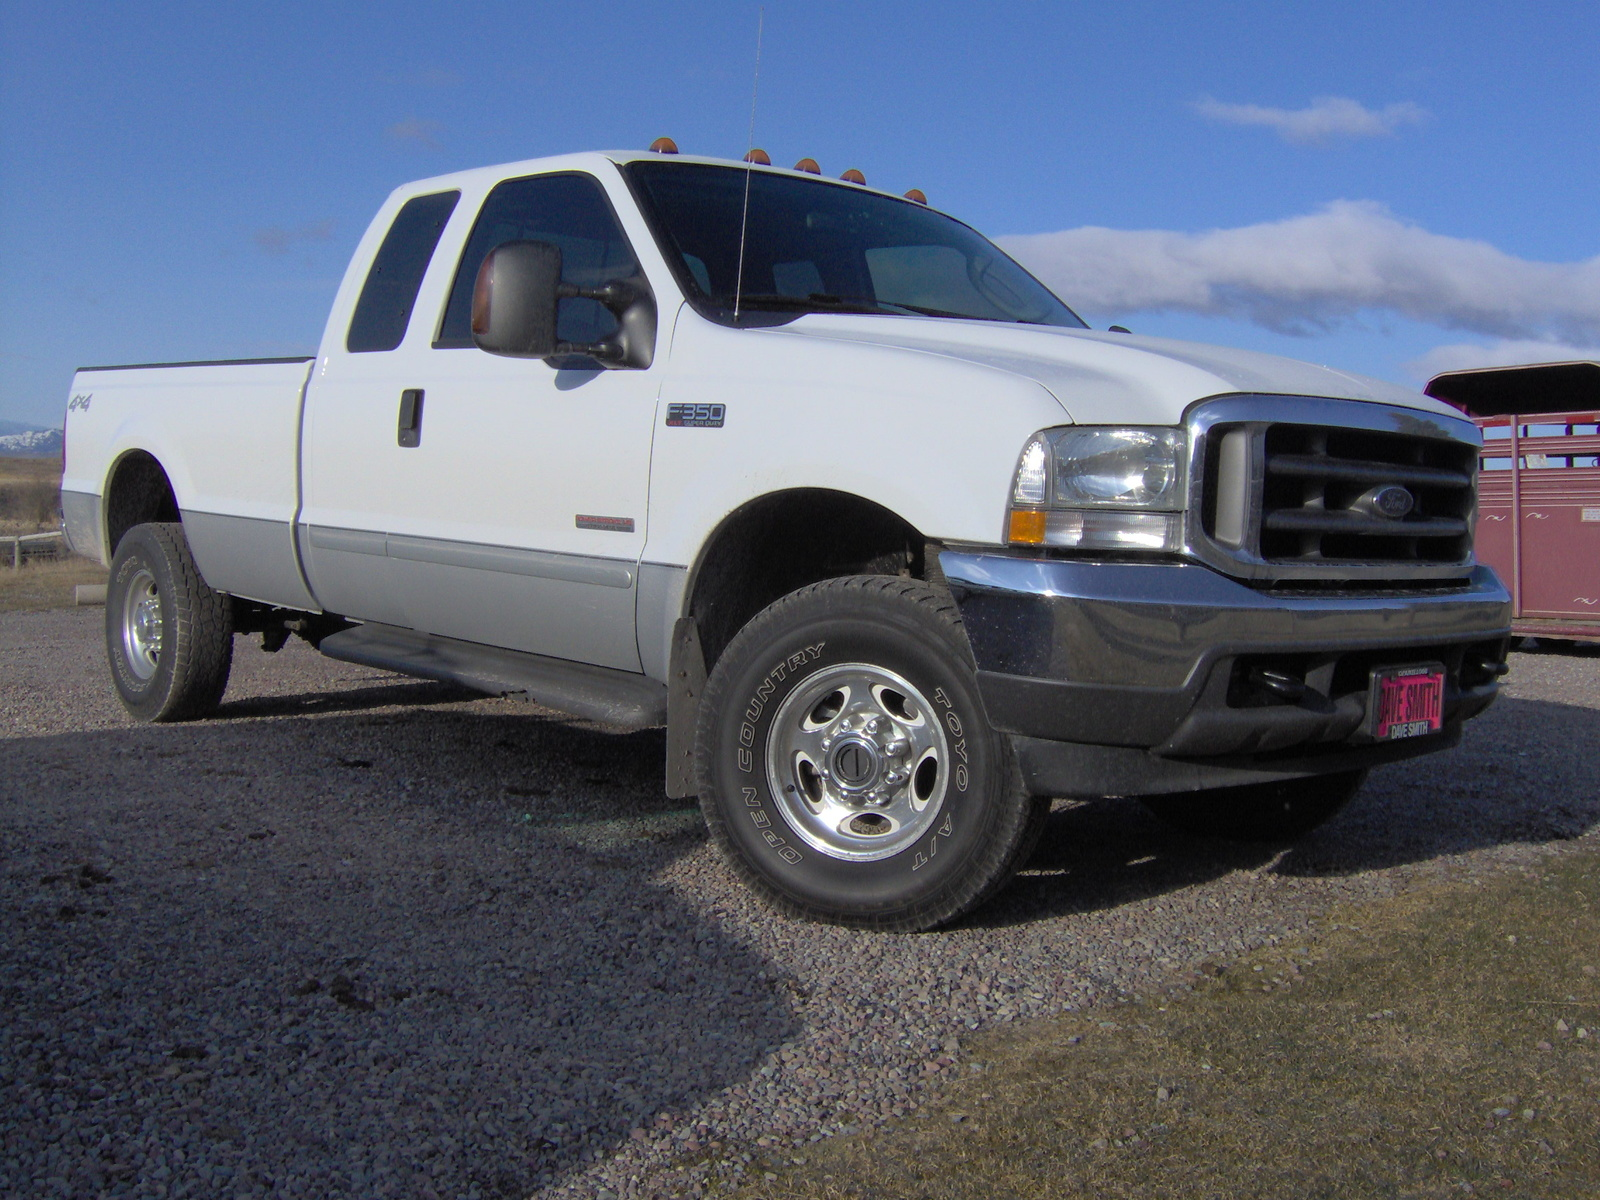 2004 Ford F-350 Super Duty 4 Dr XLT 4WD Crew Cab LB picture